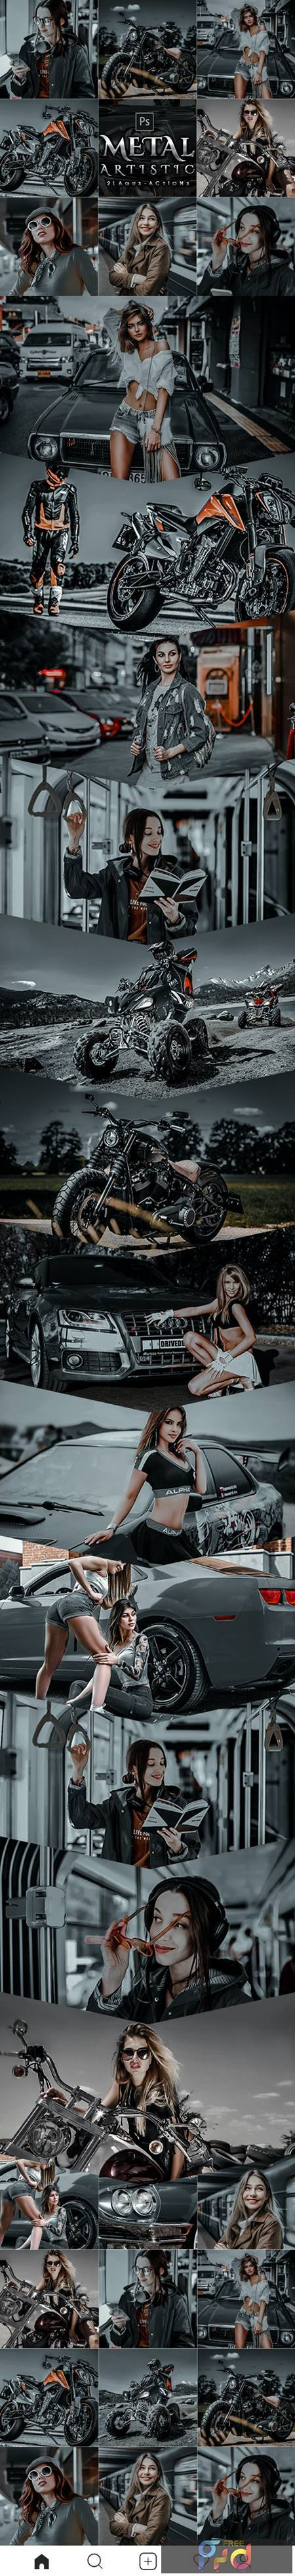 5 Artistic Metal Photoshop Actions 28751908 1